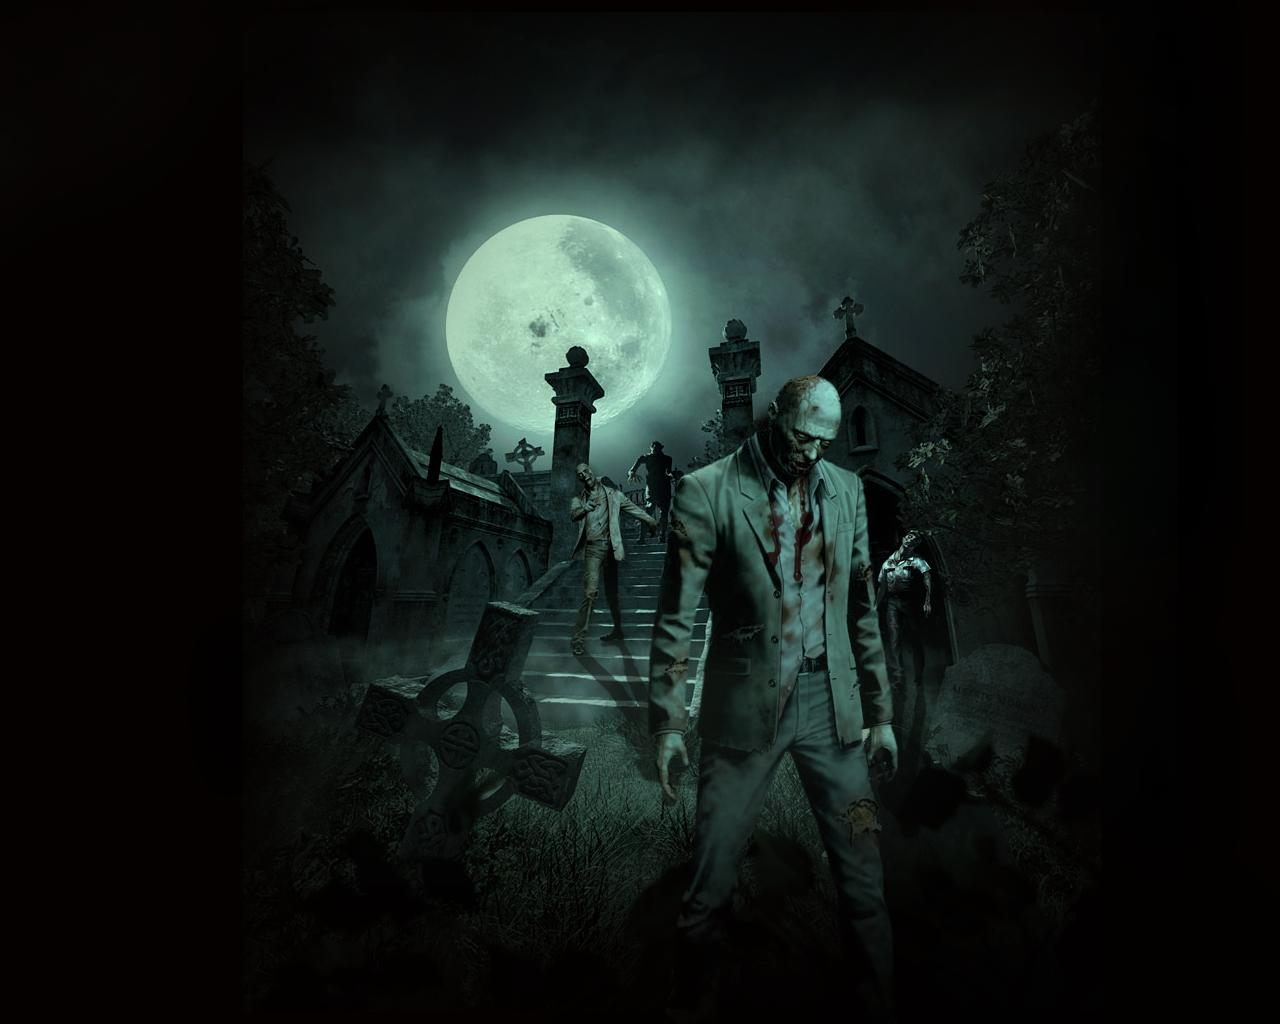 Scary Zombie Backgrounds | Scary Wallpaper Backgrounds